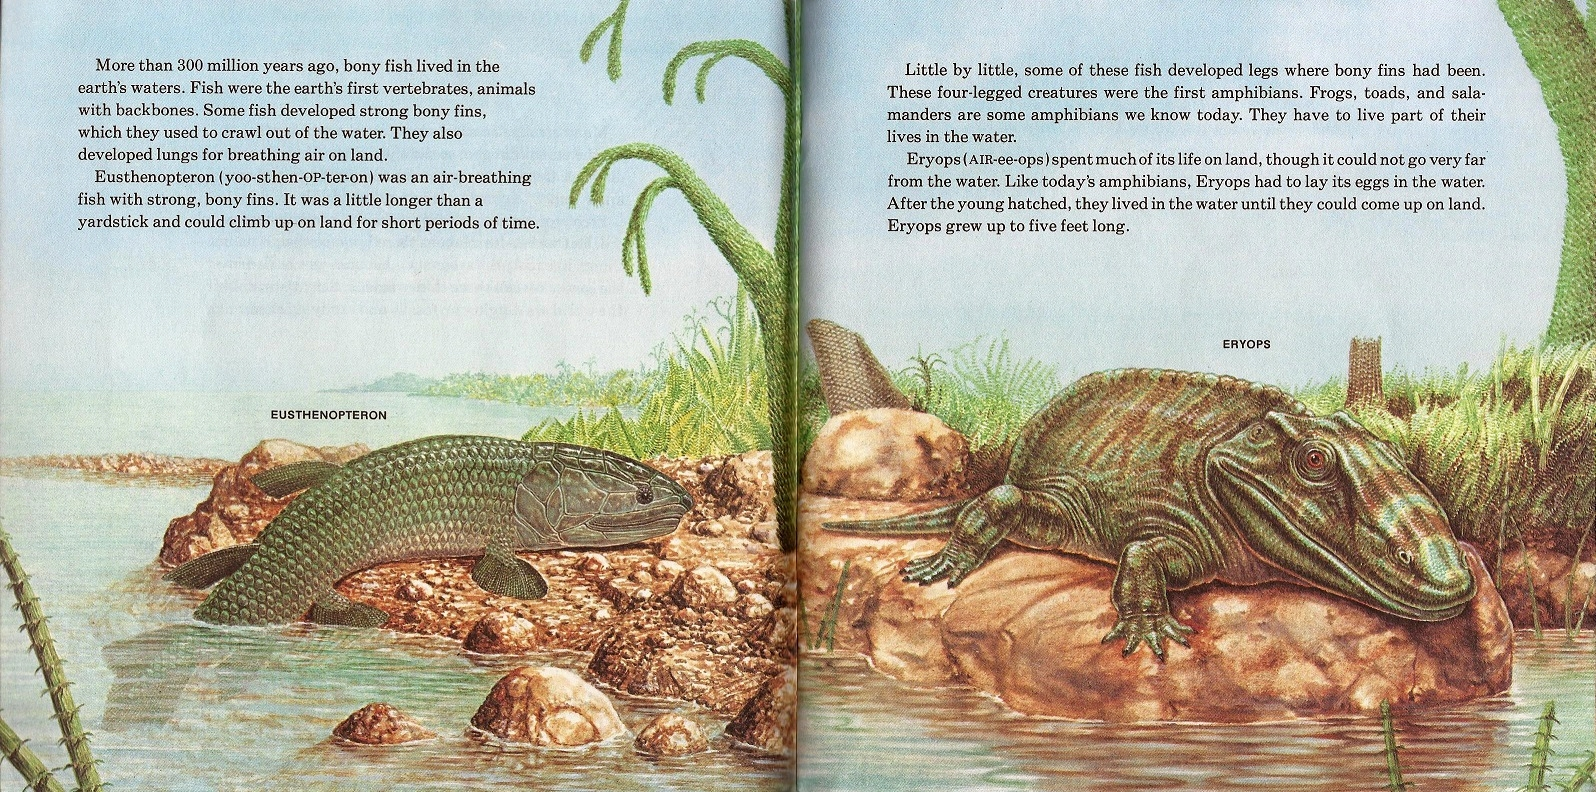 Eusthenopteron and Eryops by Peter Zallinger